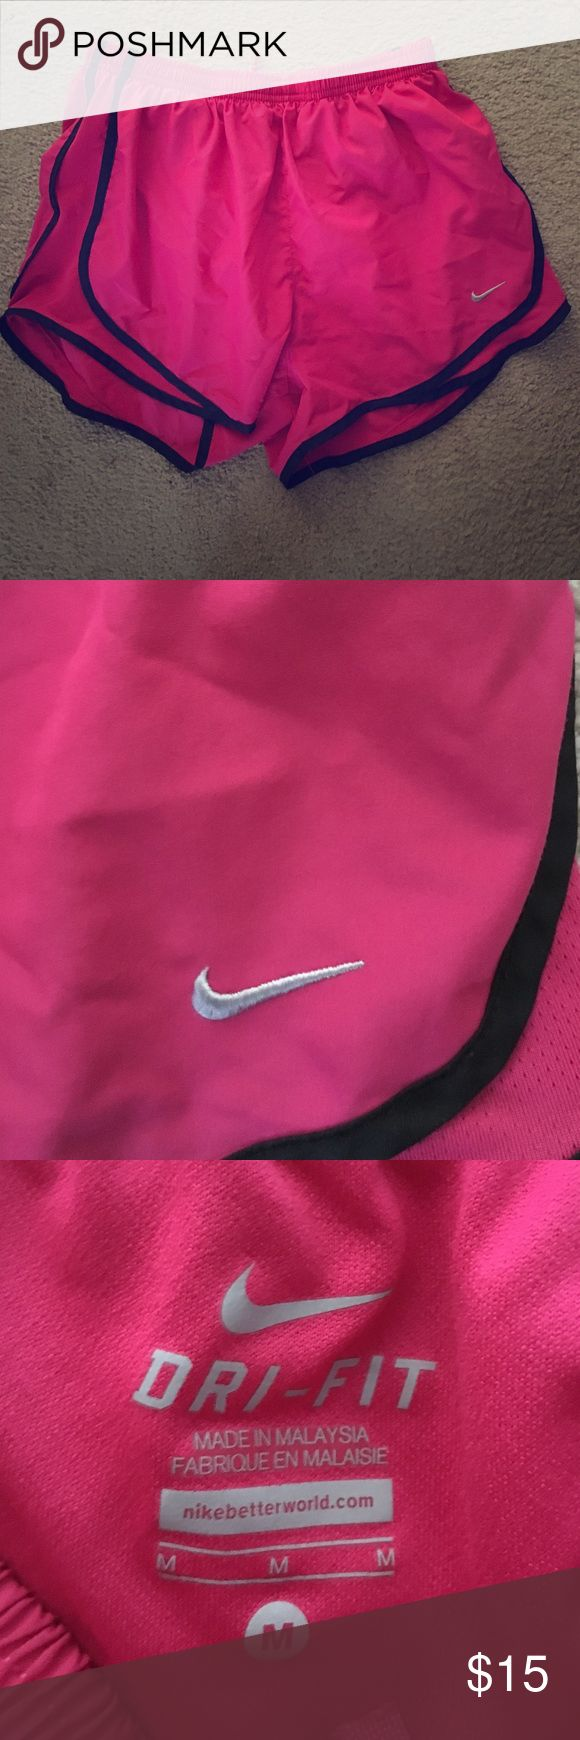 Nike Running Shorts Hot pink Nike shorts. Barely worn, these are great comfy running shorts Nike Pants Track Pants & Joggers